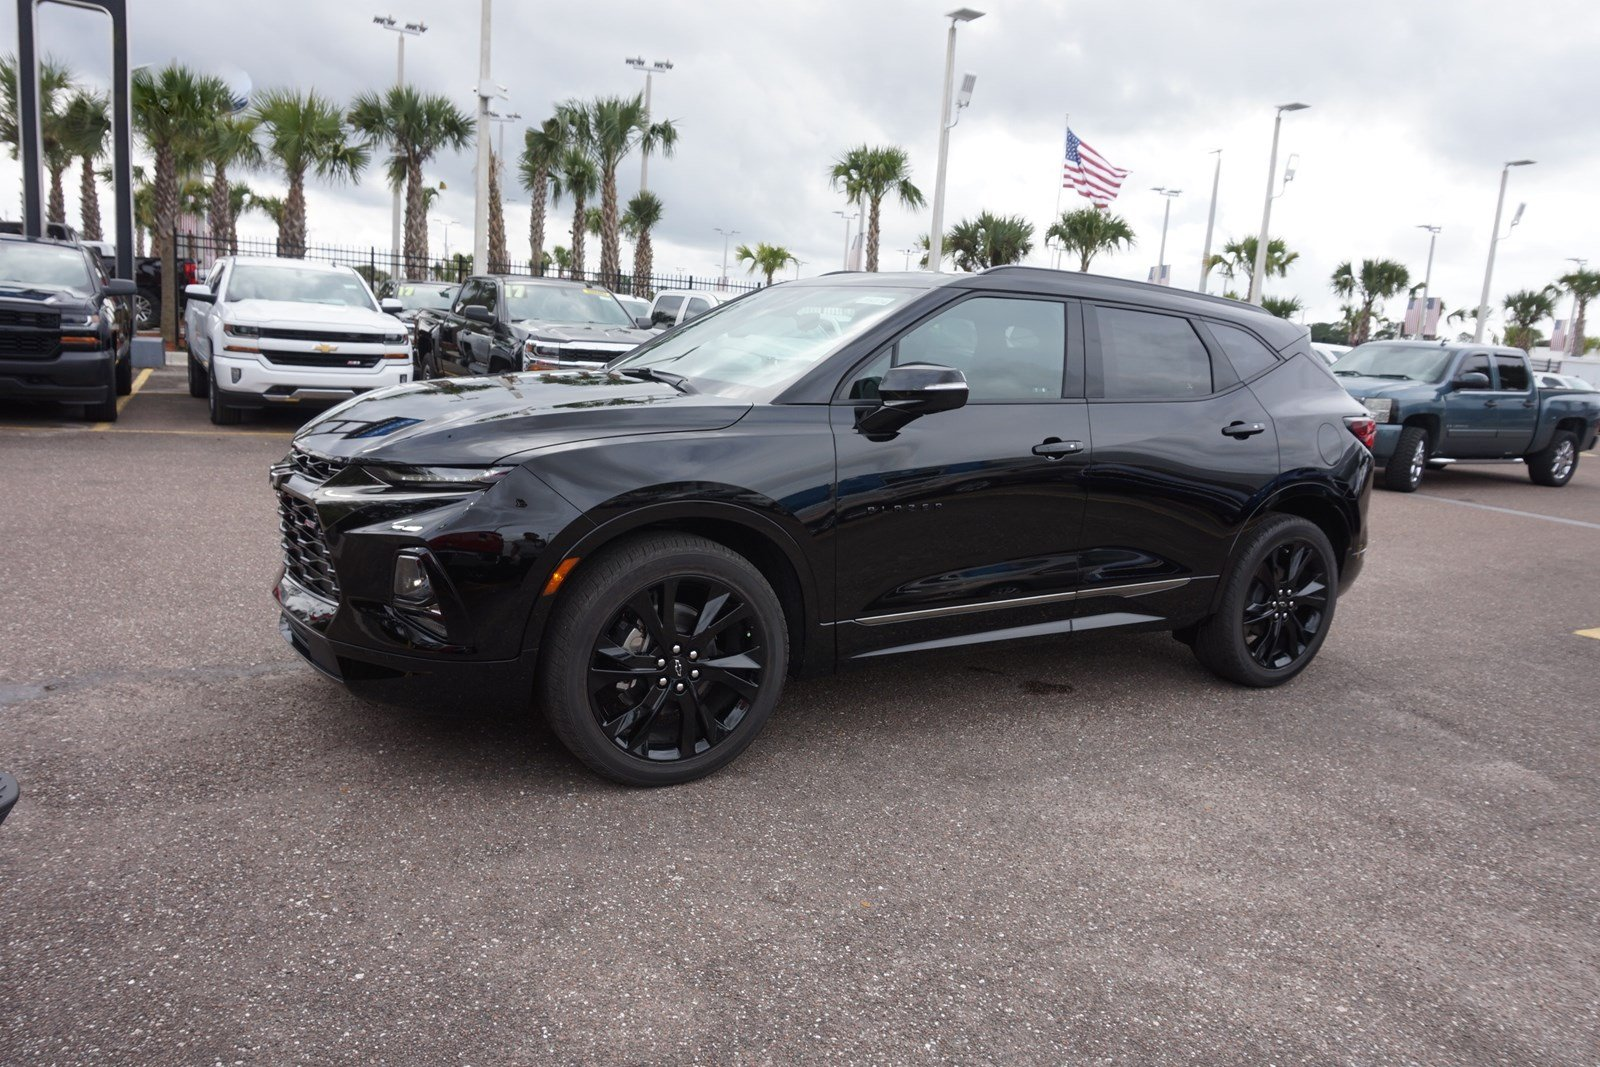 2019 Chevrolet Blazer Rs For Sale - Chevrolet Cars Review ...